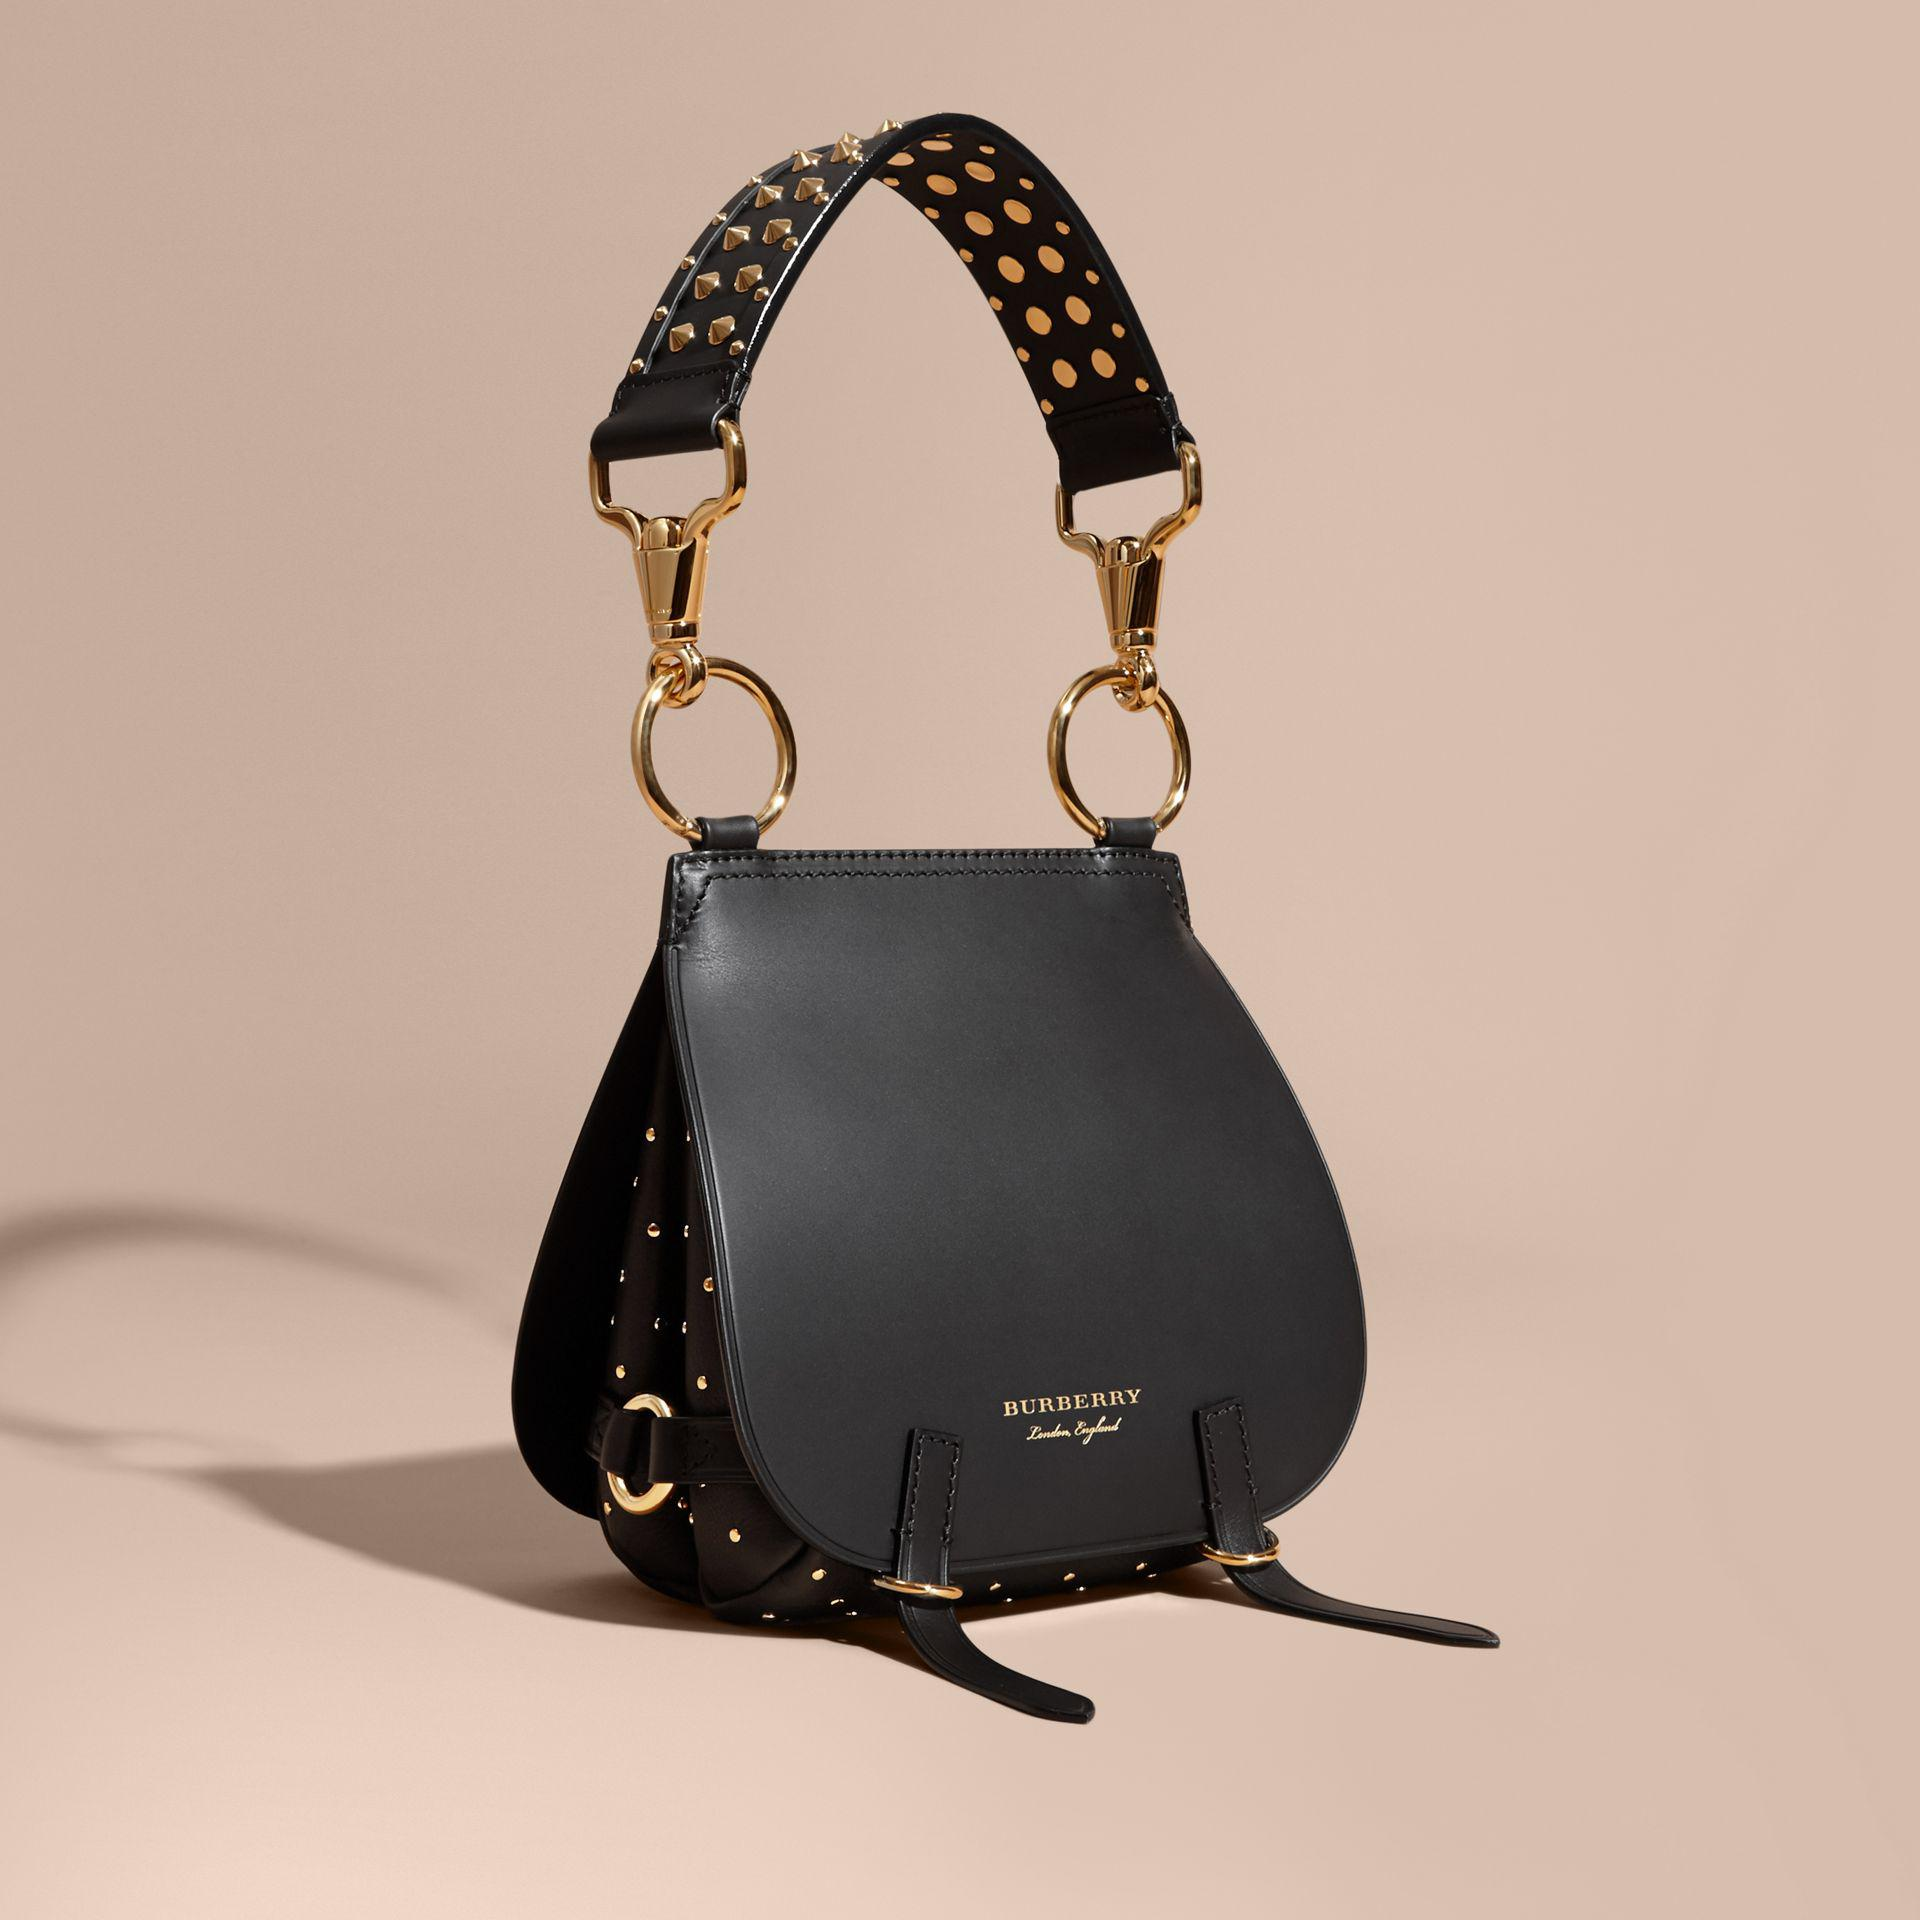 29a7b941902 Burberry Medium Grainy Leather Tote Bag Black. Burberry The Medium Bridle  In Leather Men Bags